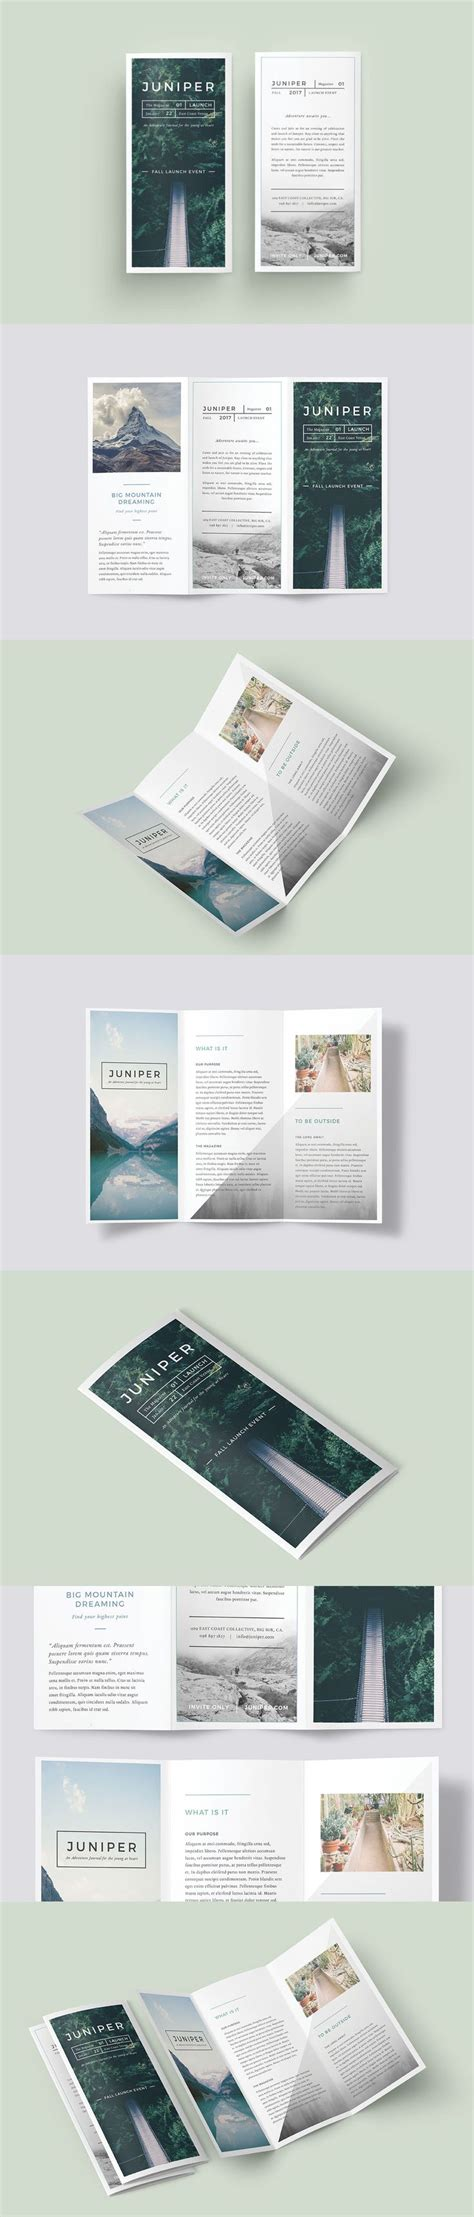 best templates for brochures 25 best ideas about brochure design on pinterest